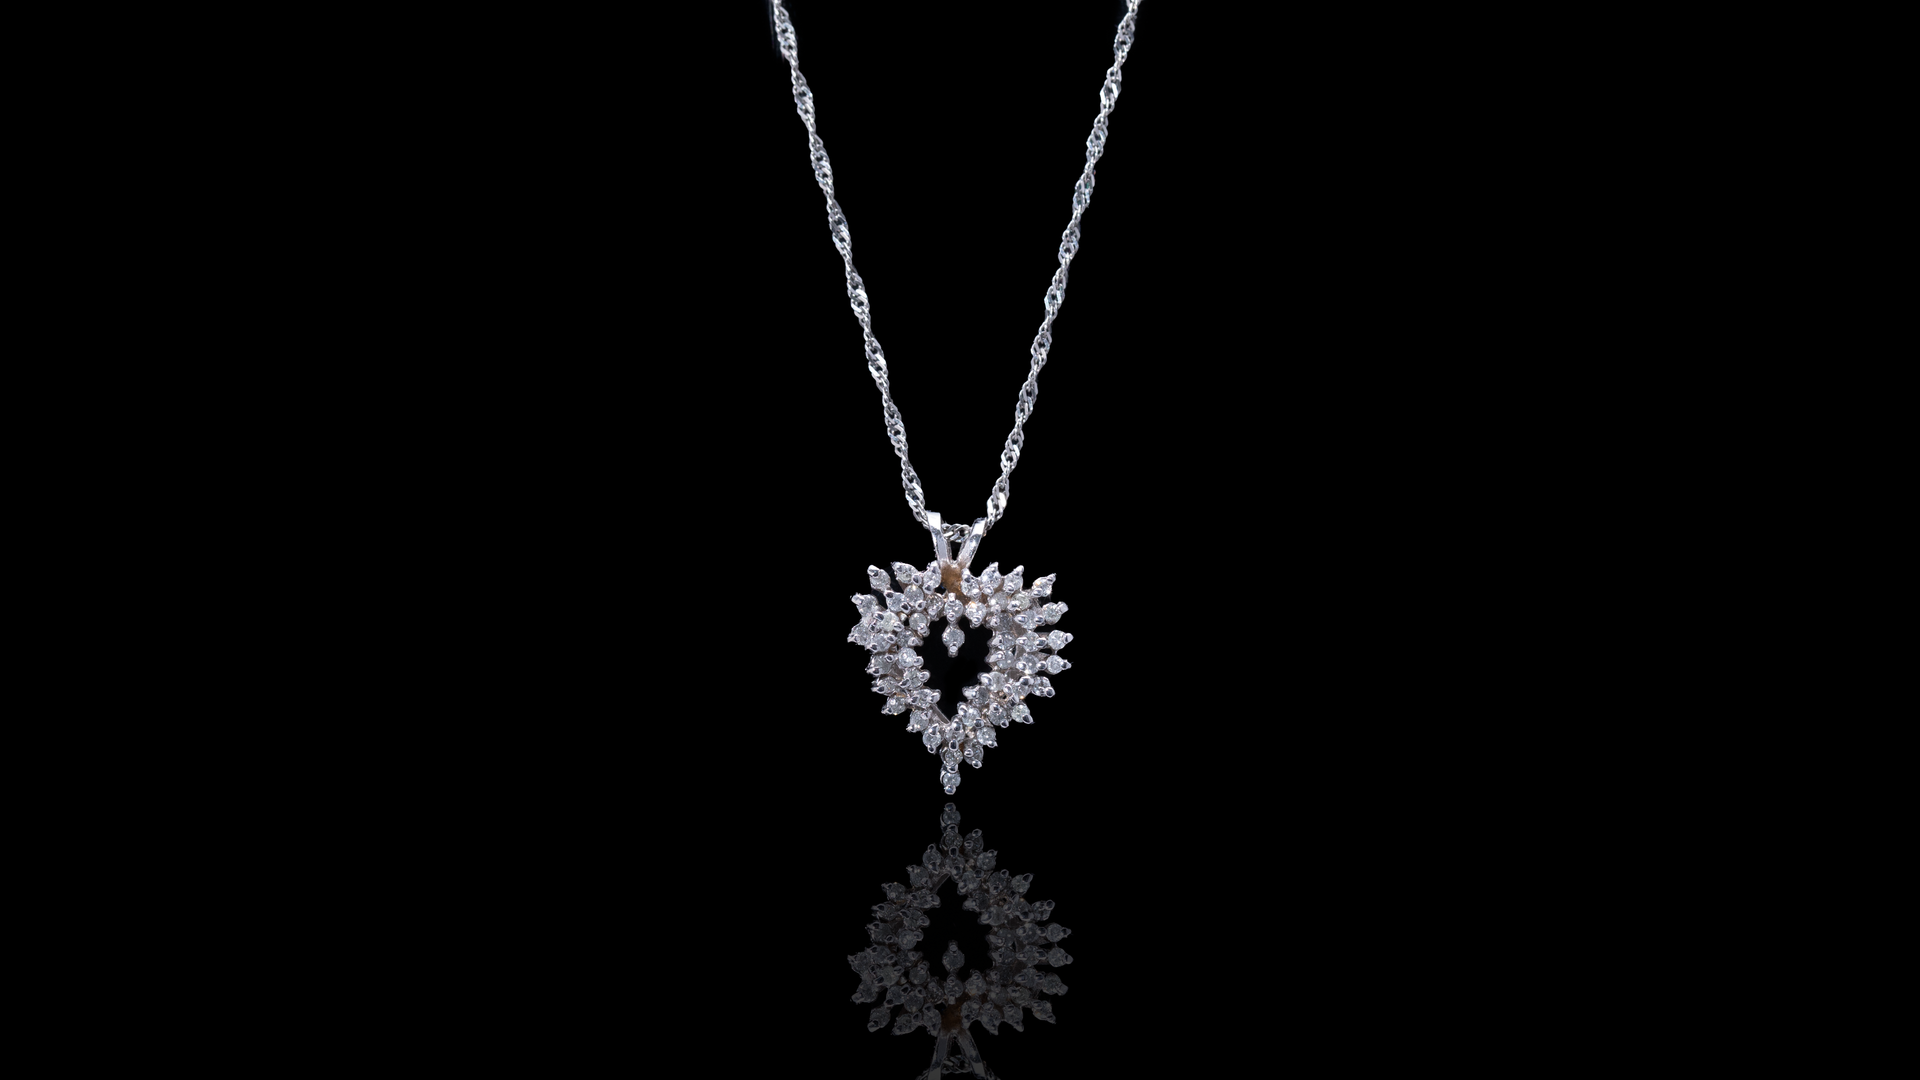 [SPECIAL] 10k White Gold Fancy Heart Diamond Necklace